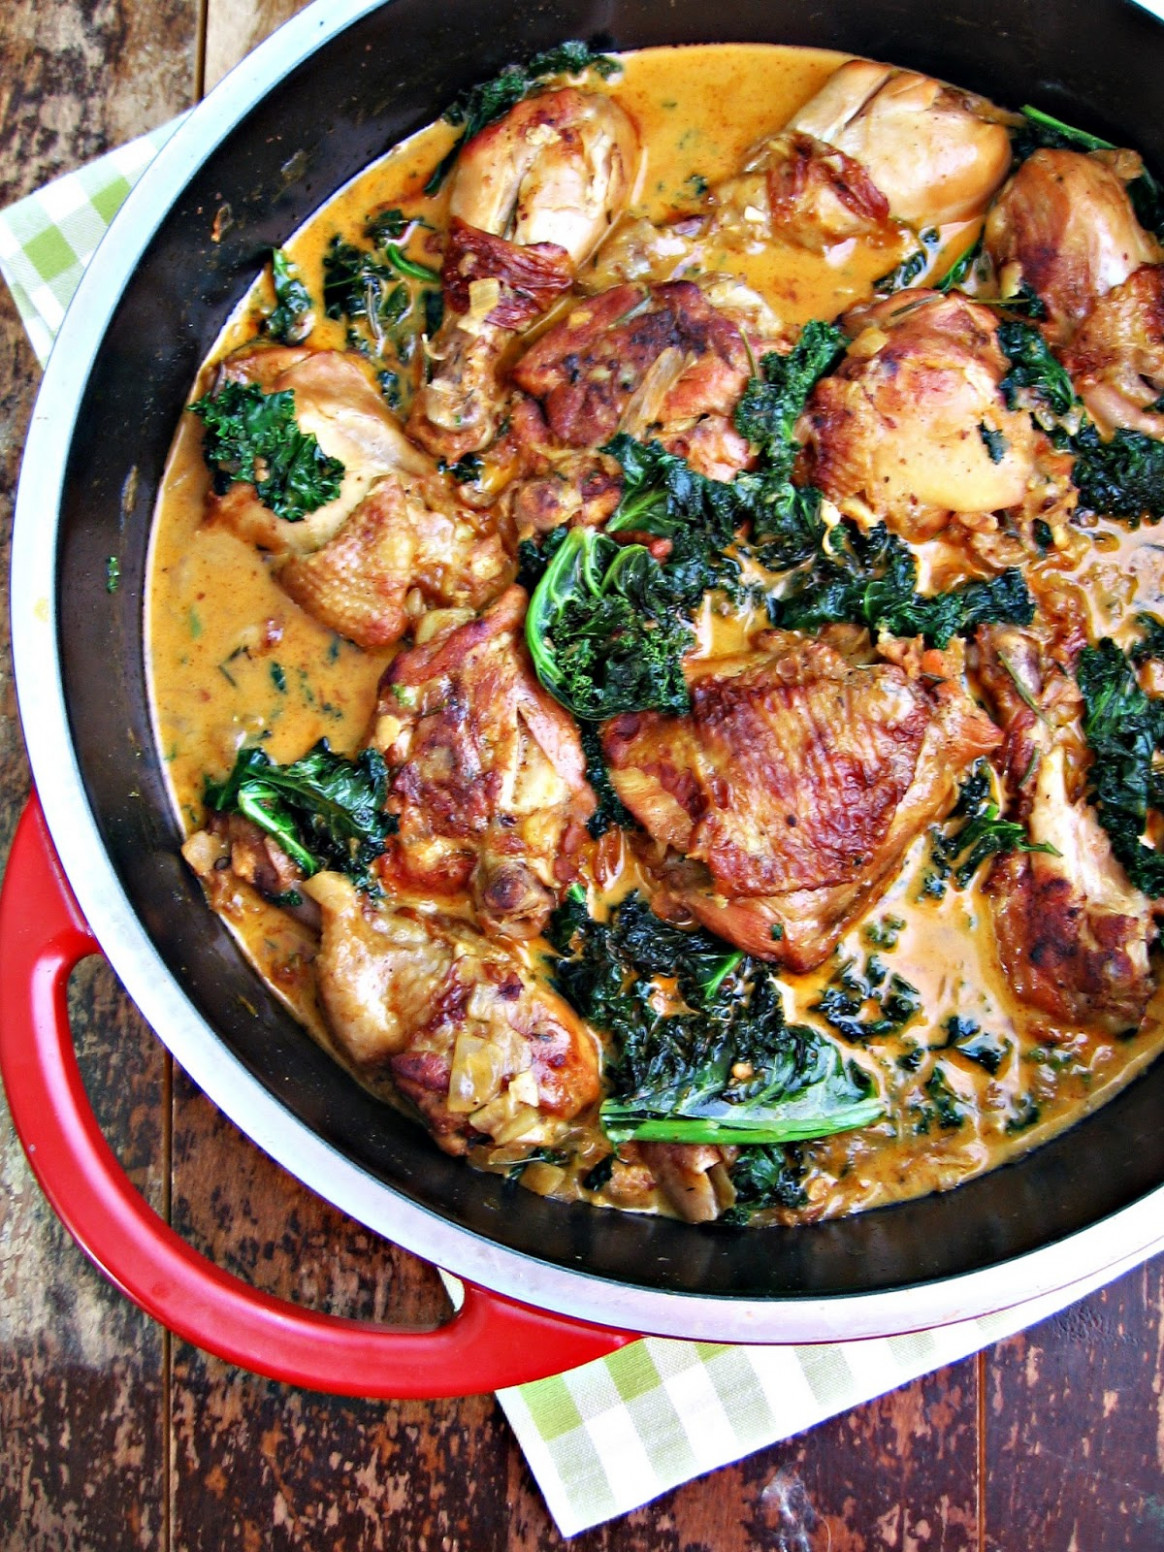 sweetsugarbean: Braised Chicken and Kale with Paprika ..